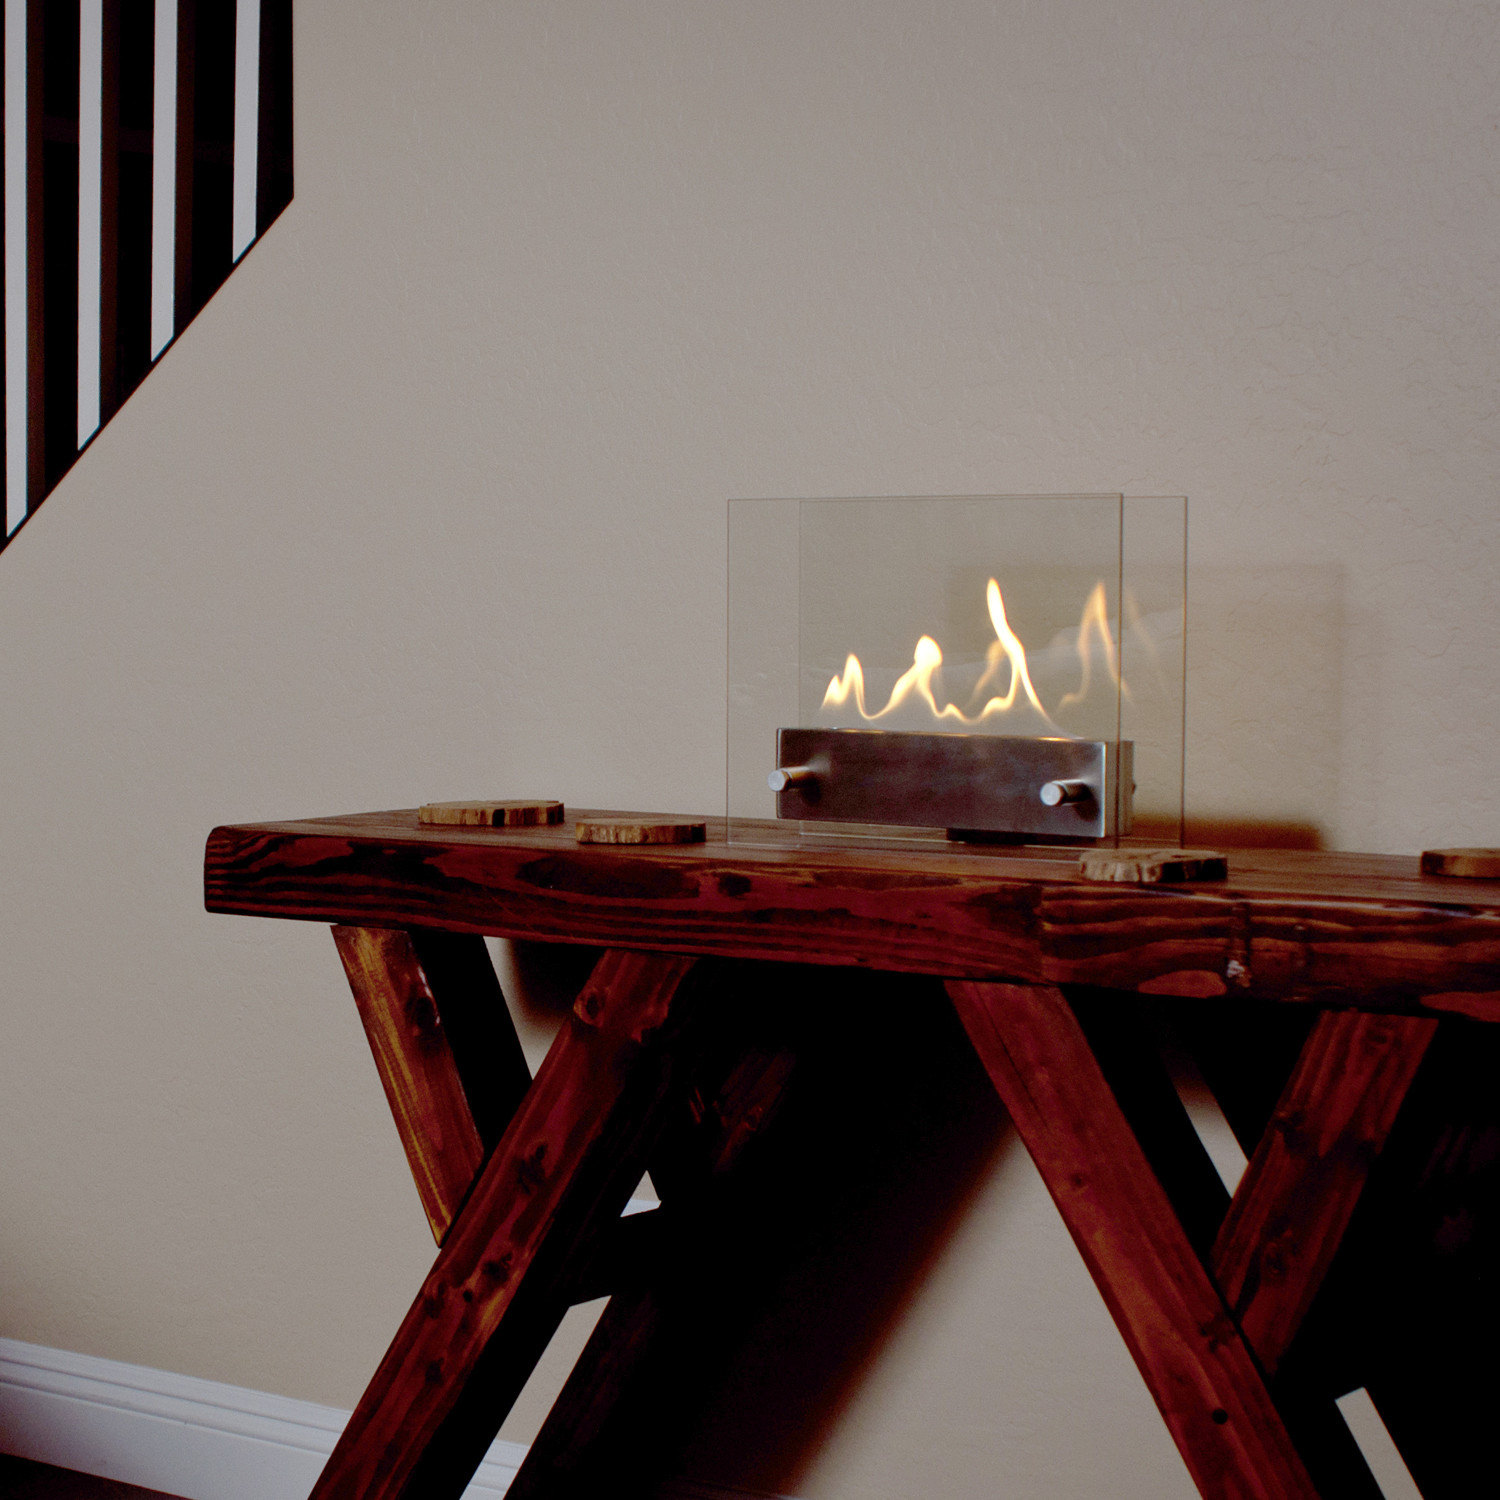 tabletop fireplace  stainless steel  utopia fire  touch of modern - tabletop fireplace  stainless steel